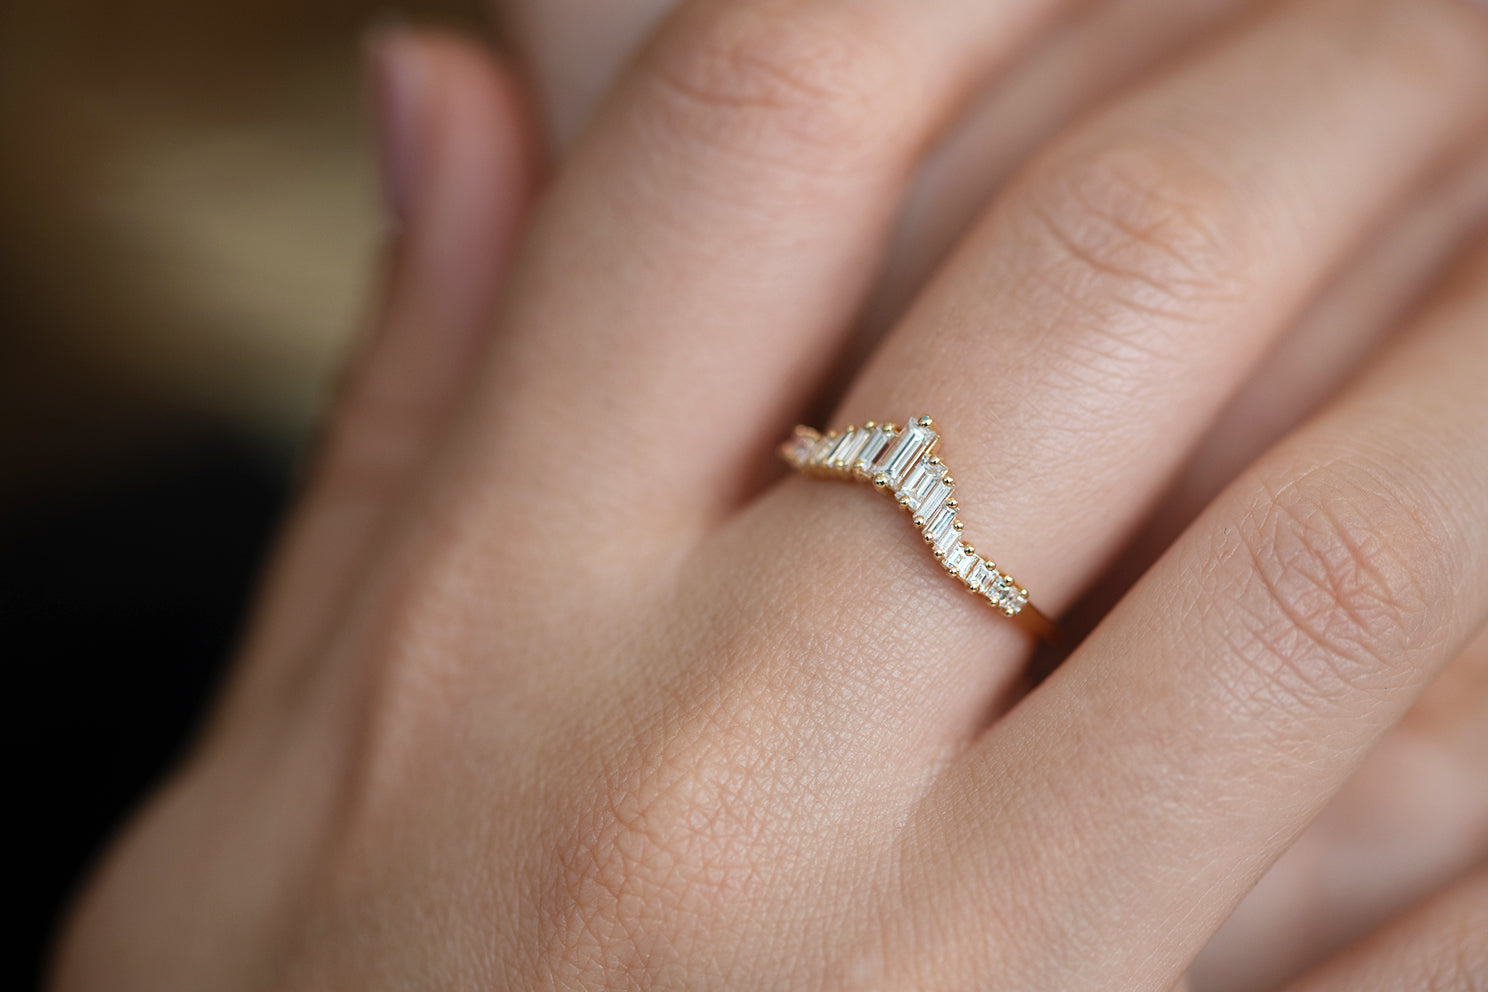 Art Deco Wedding Ring - Tapered Baguette Diamond Ring on Hand Side View